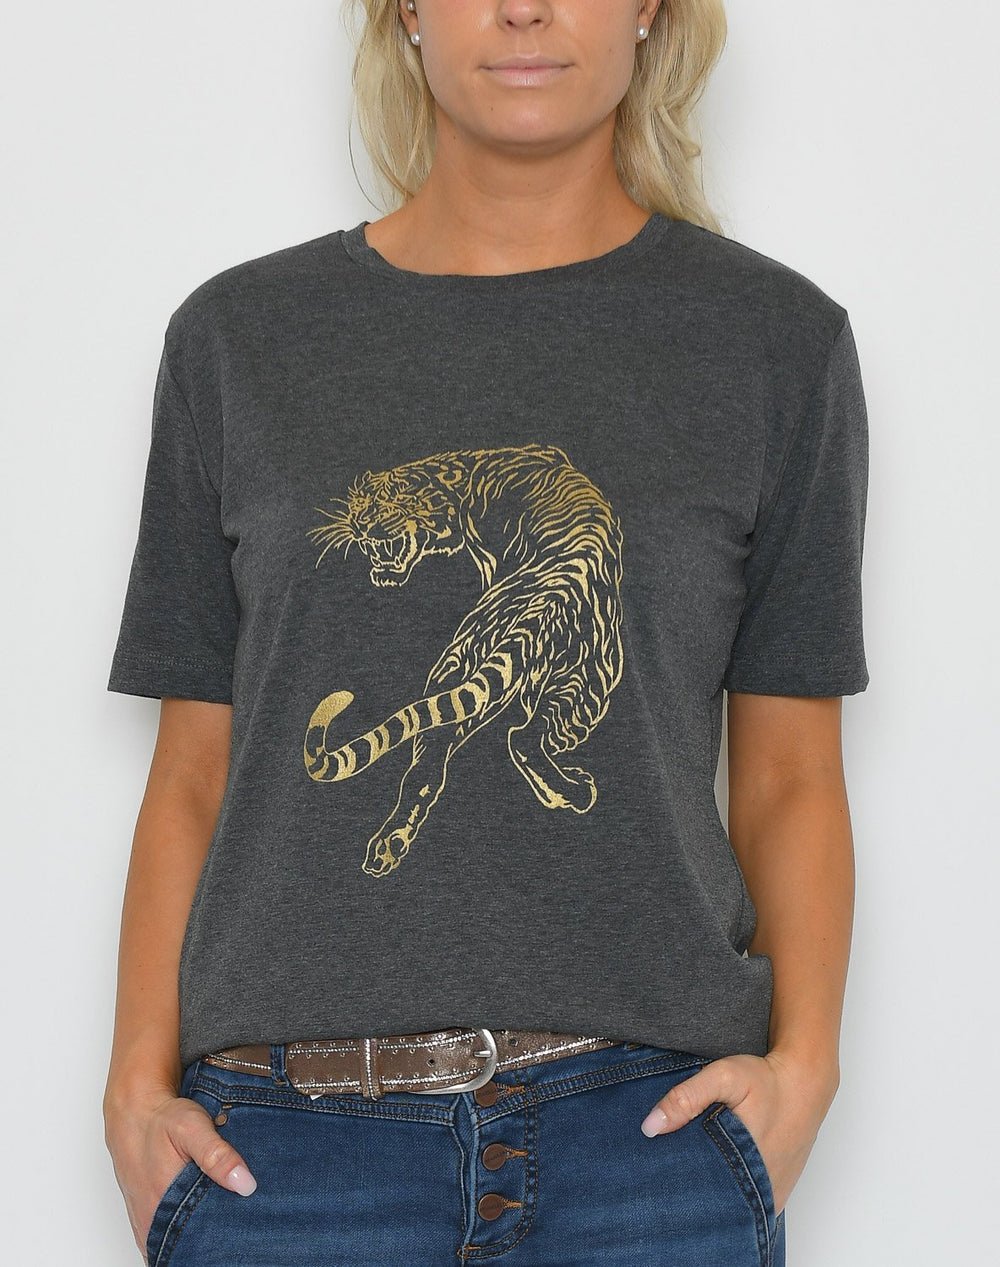 Luxzuz t-shirt sneaky tiger dark grey melange - Online-Mode